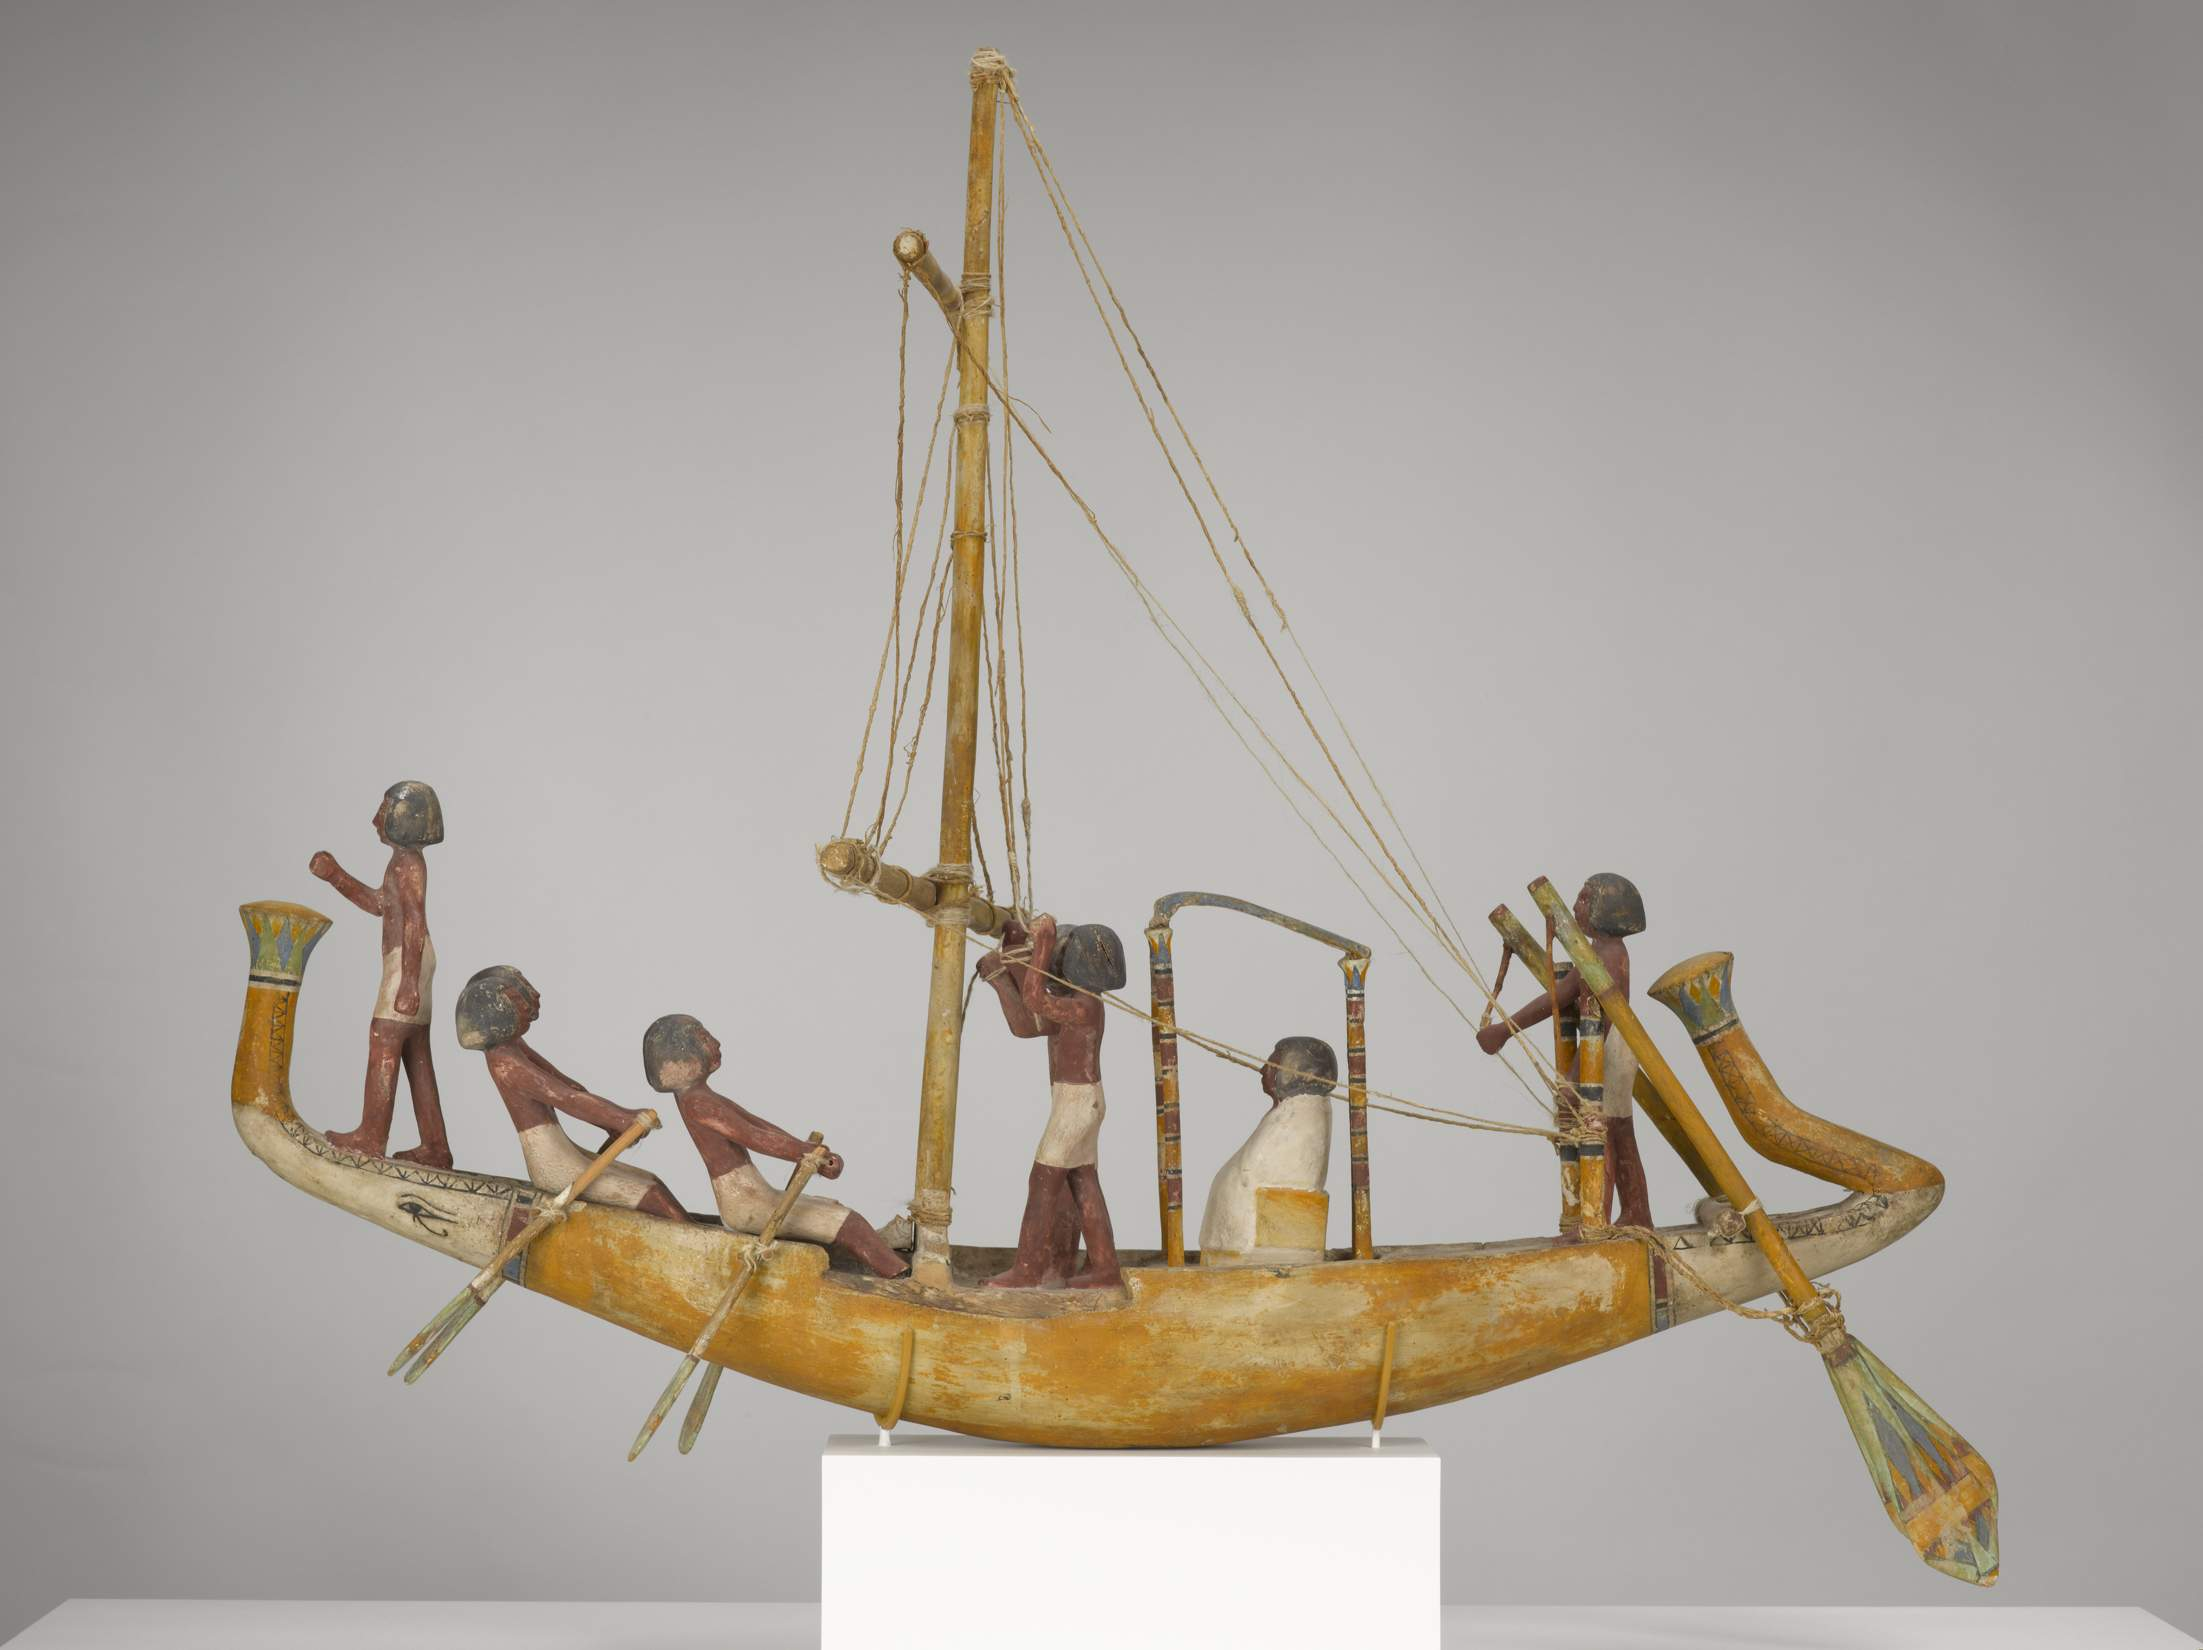 EGYPTIAN, Model of a Boat, 82_12, view A_0